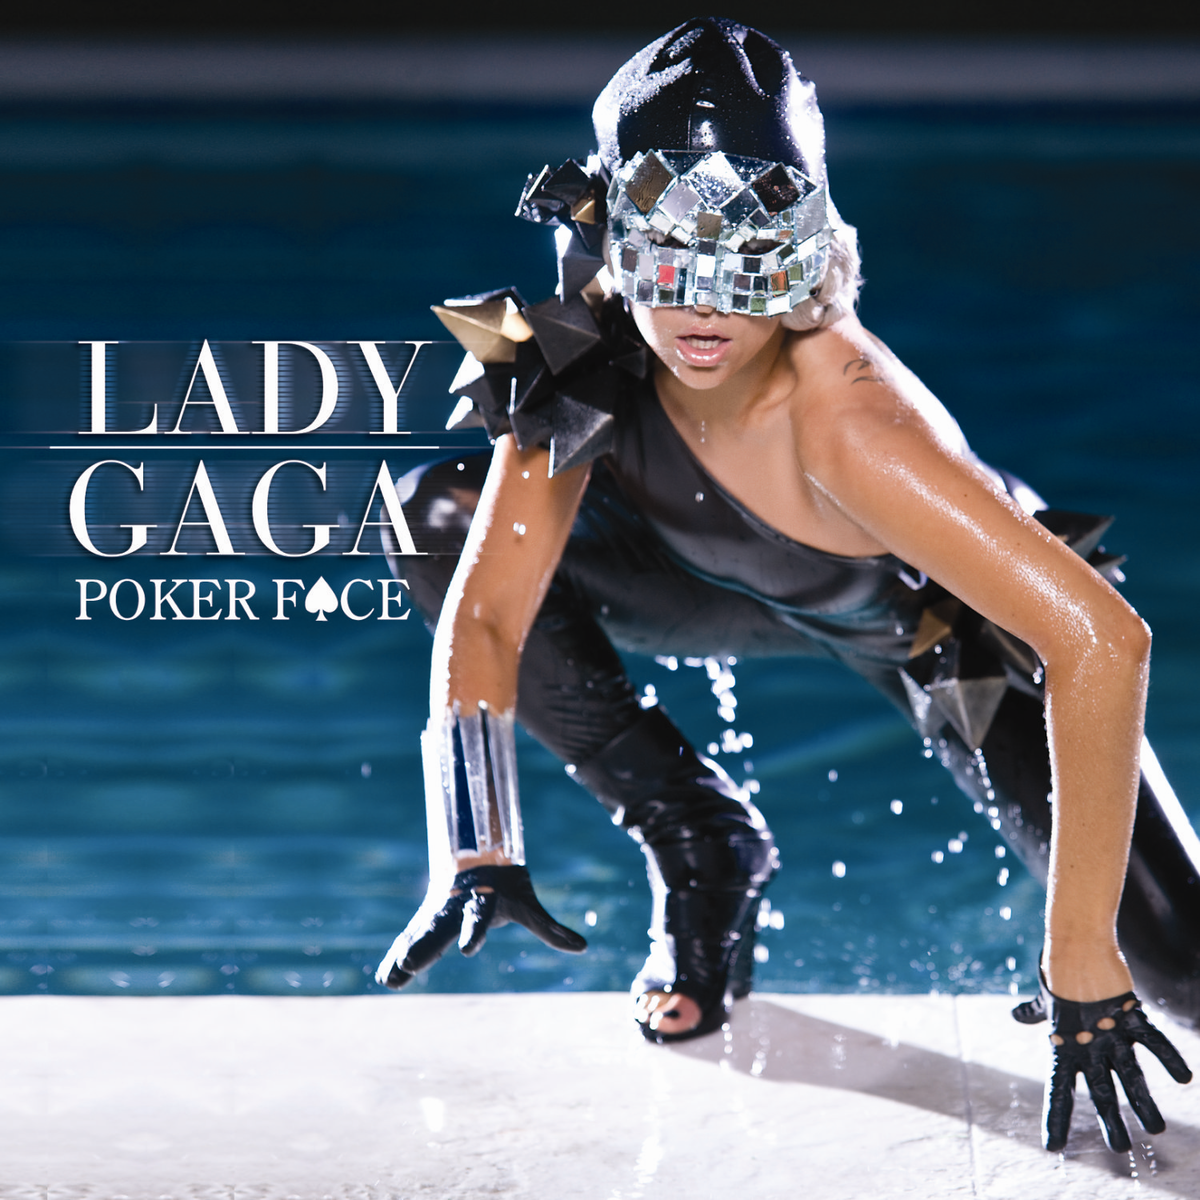 Pokerface Lady Gaga